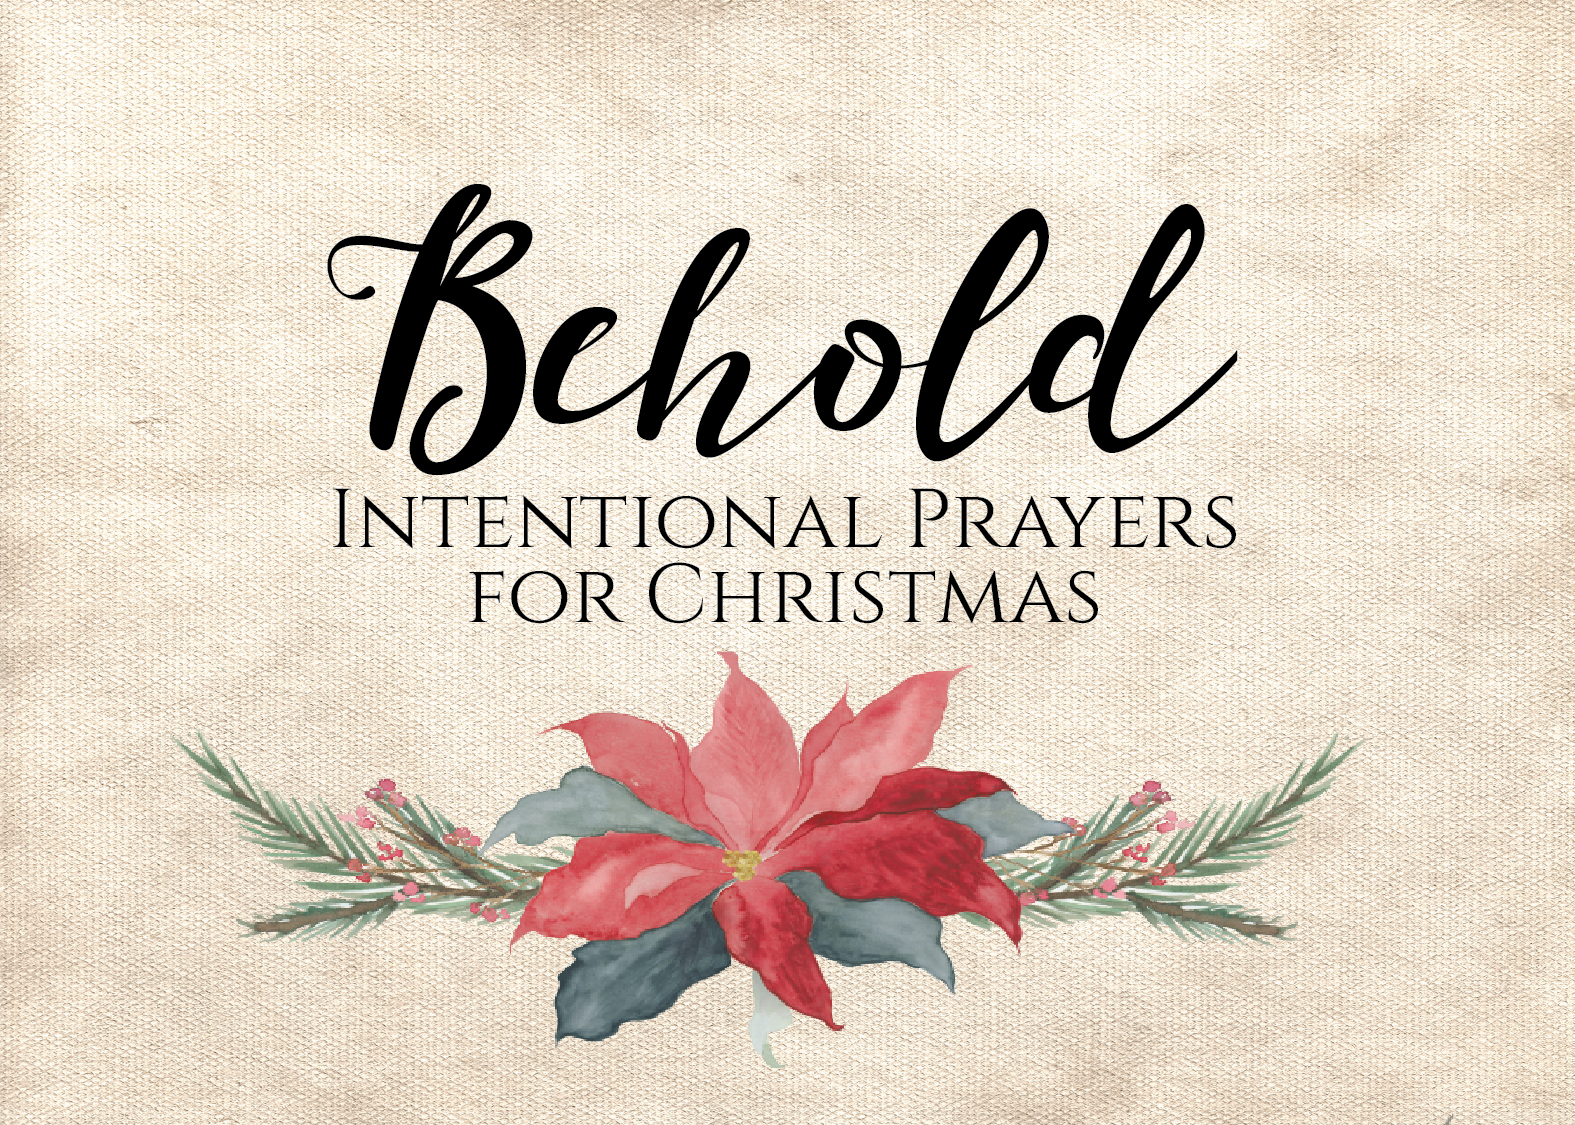 Behold - Intentional Prayers for Advent-01.png